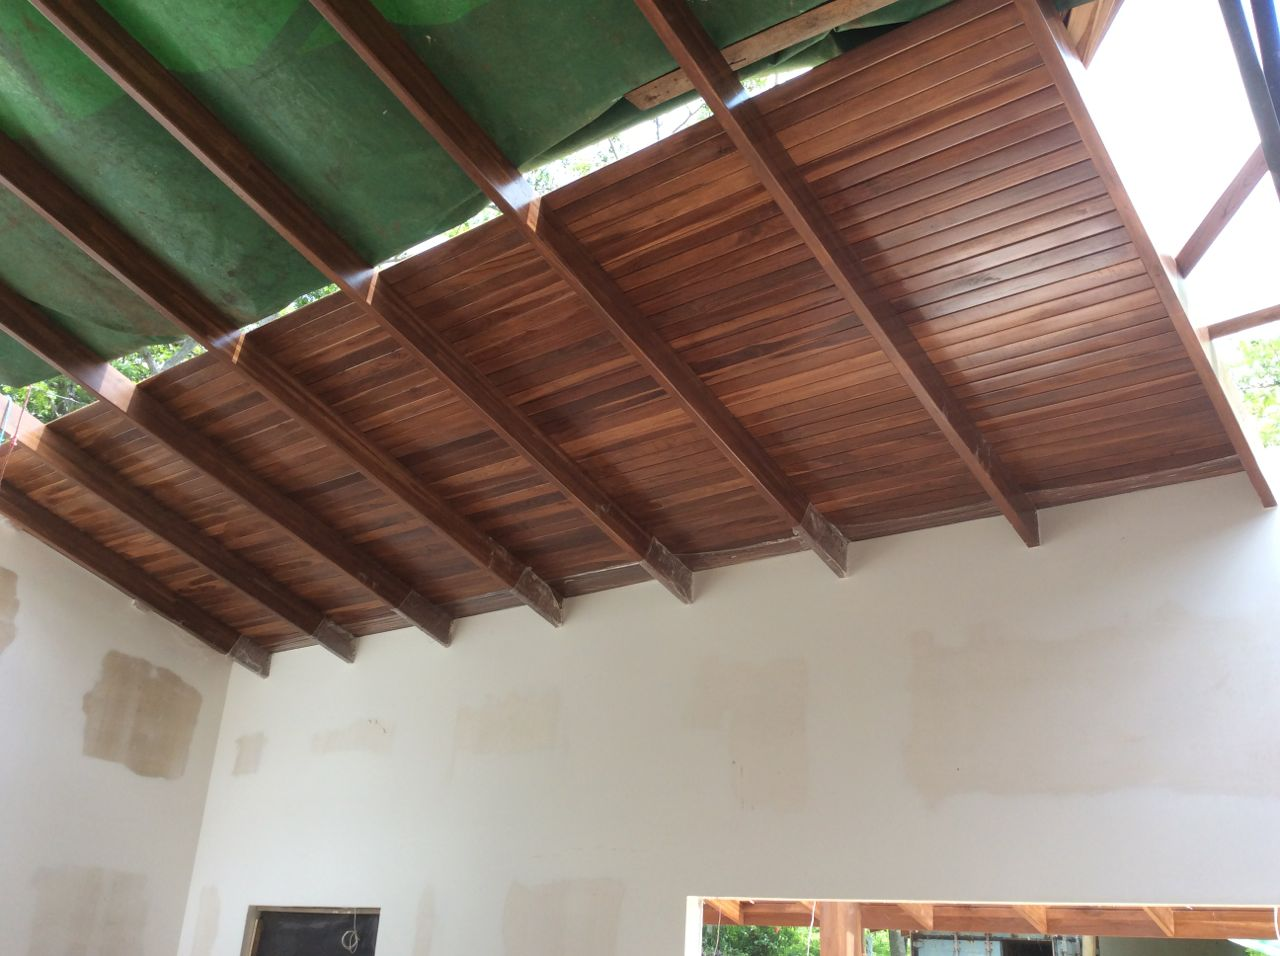 Living room ceiling up